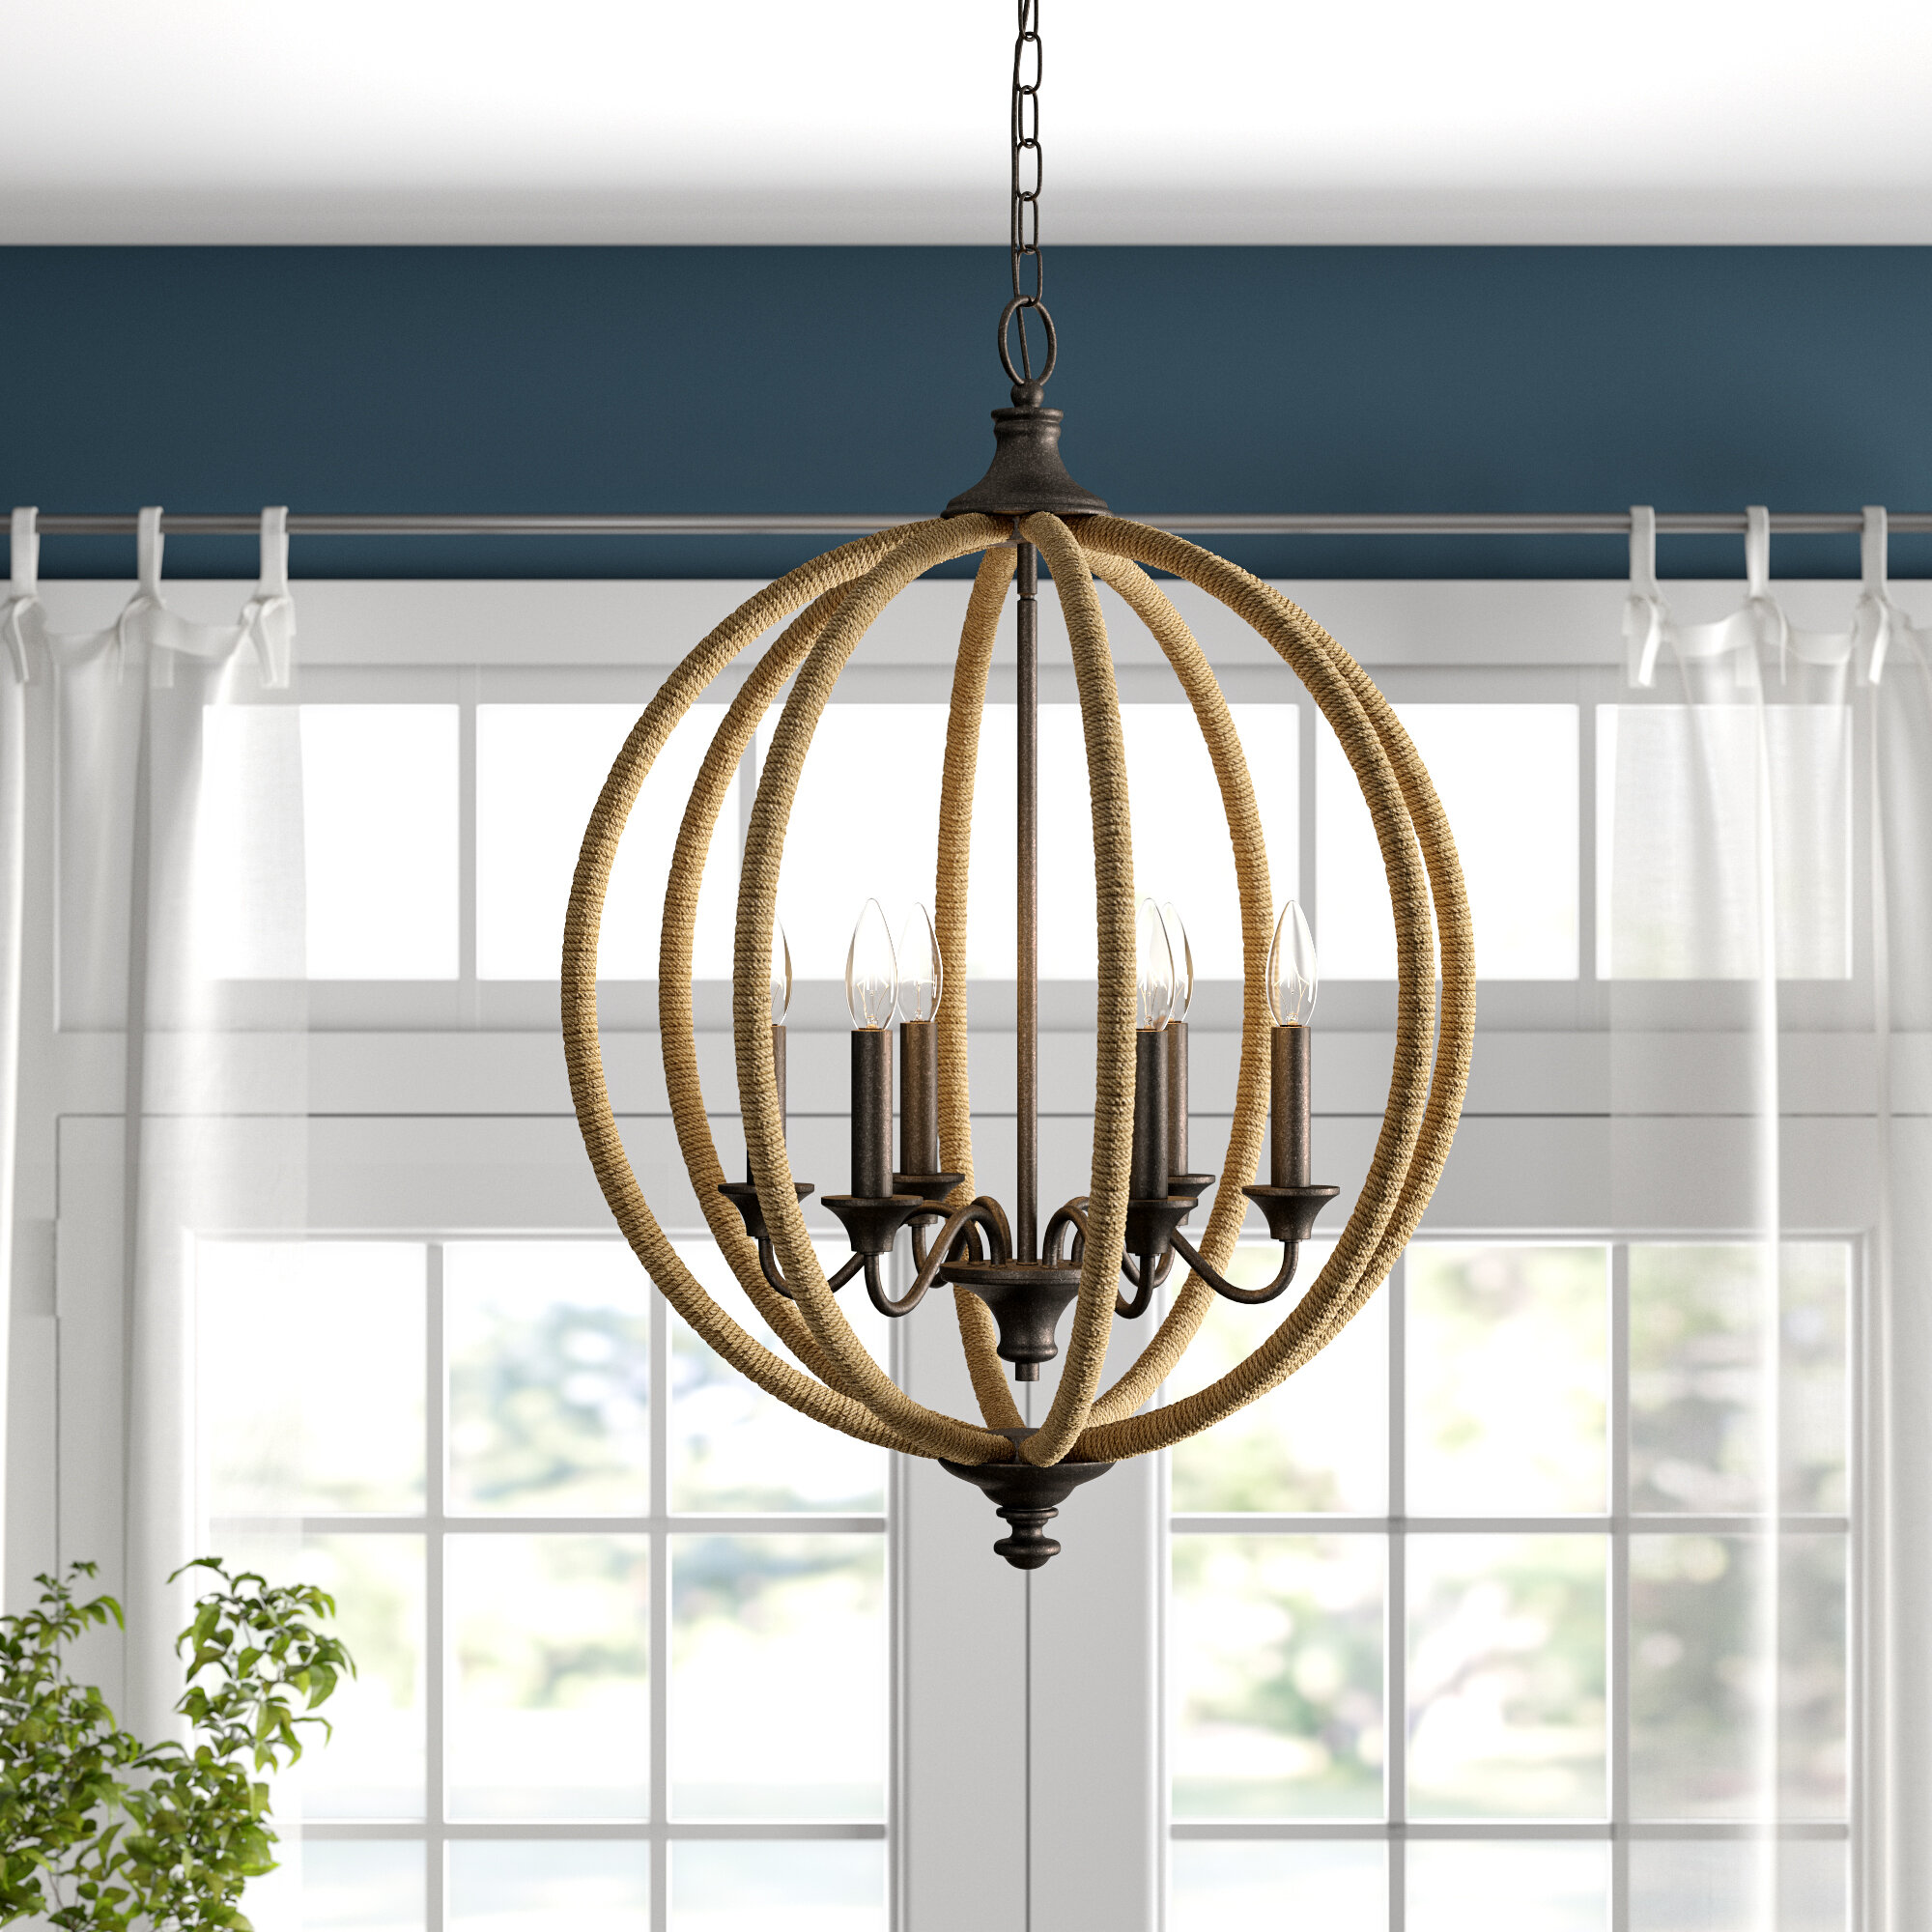 Amherst 6 Light Candle Style Globe Chandelier With Rope Accents Reviews Birch Lane